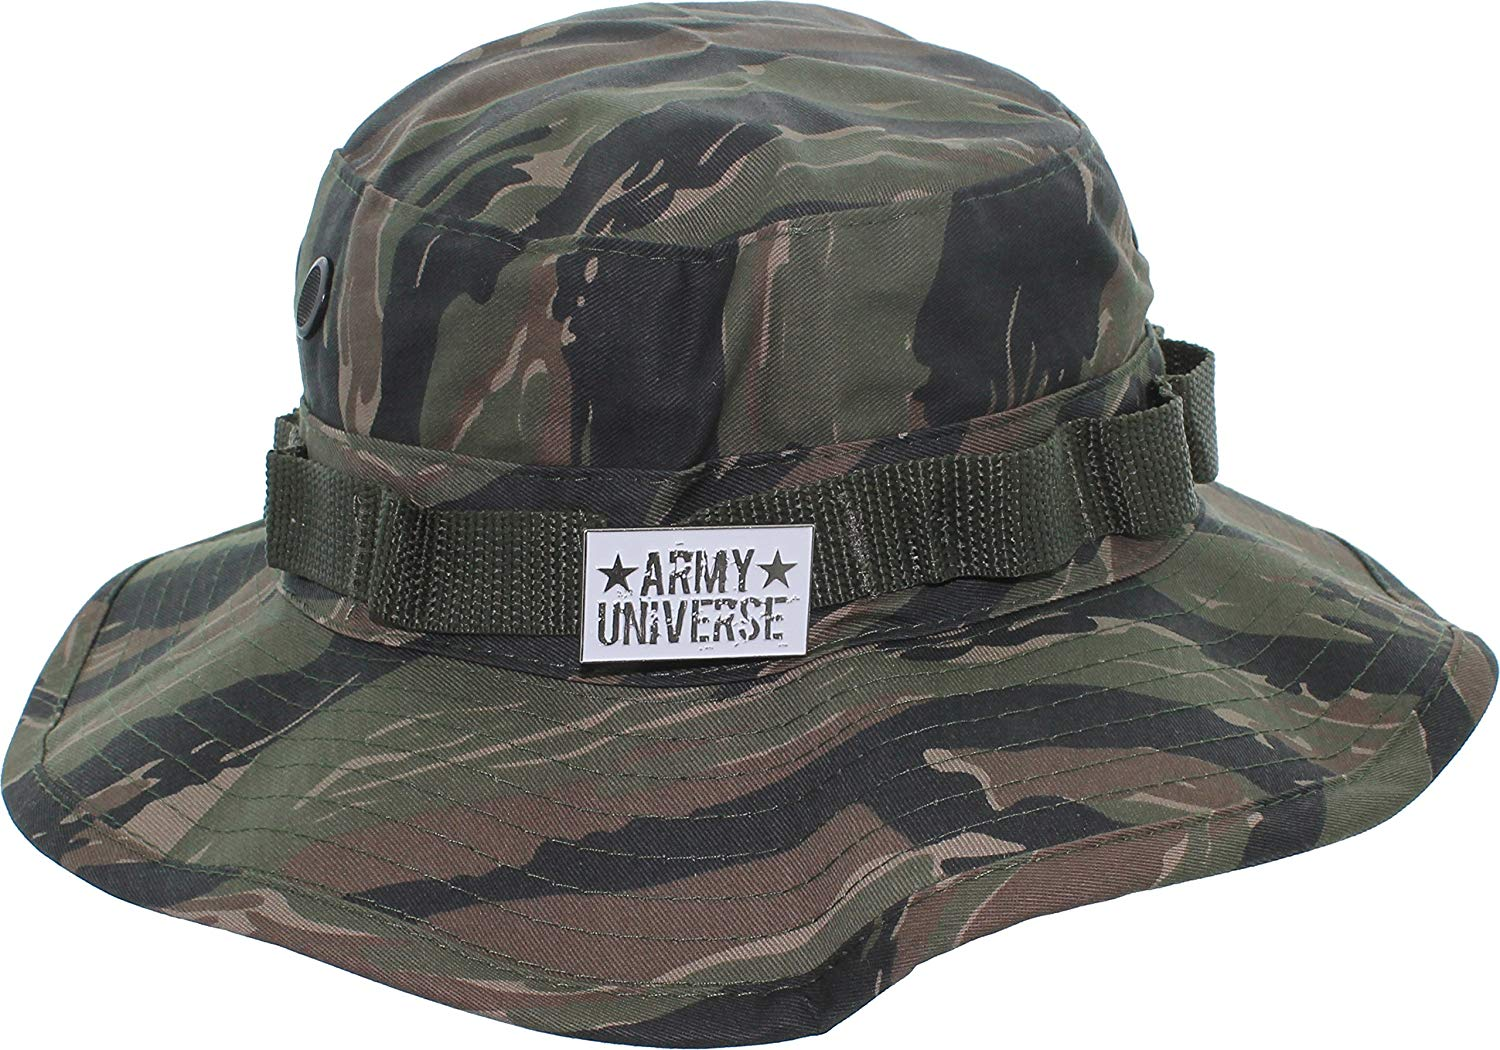 Army Universe Tactical Boonie Hat Military Camo Bucket Wide Brim Sun  Fishing Bush Booney Cap with a09fe96a2